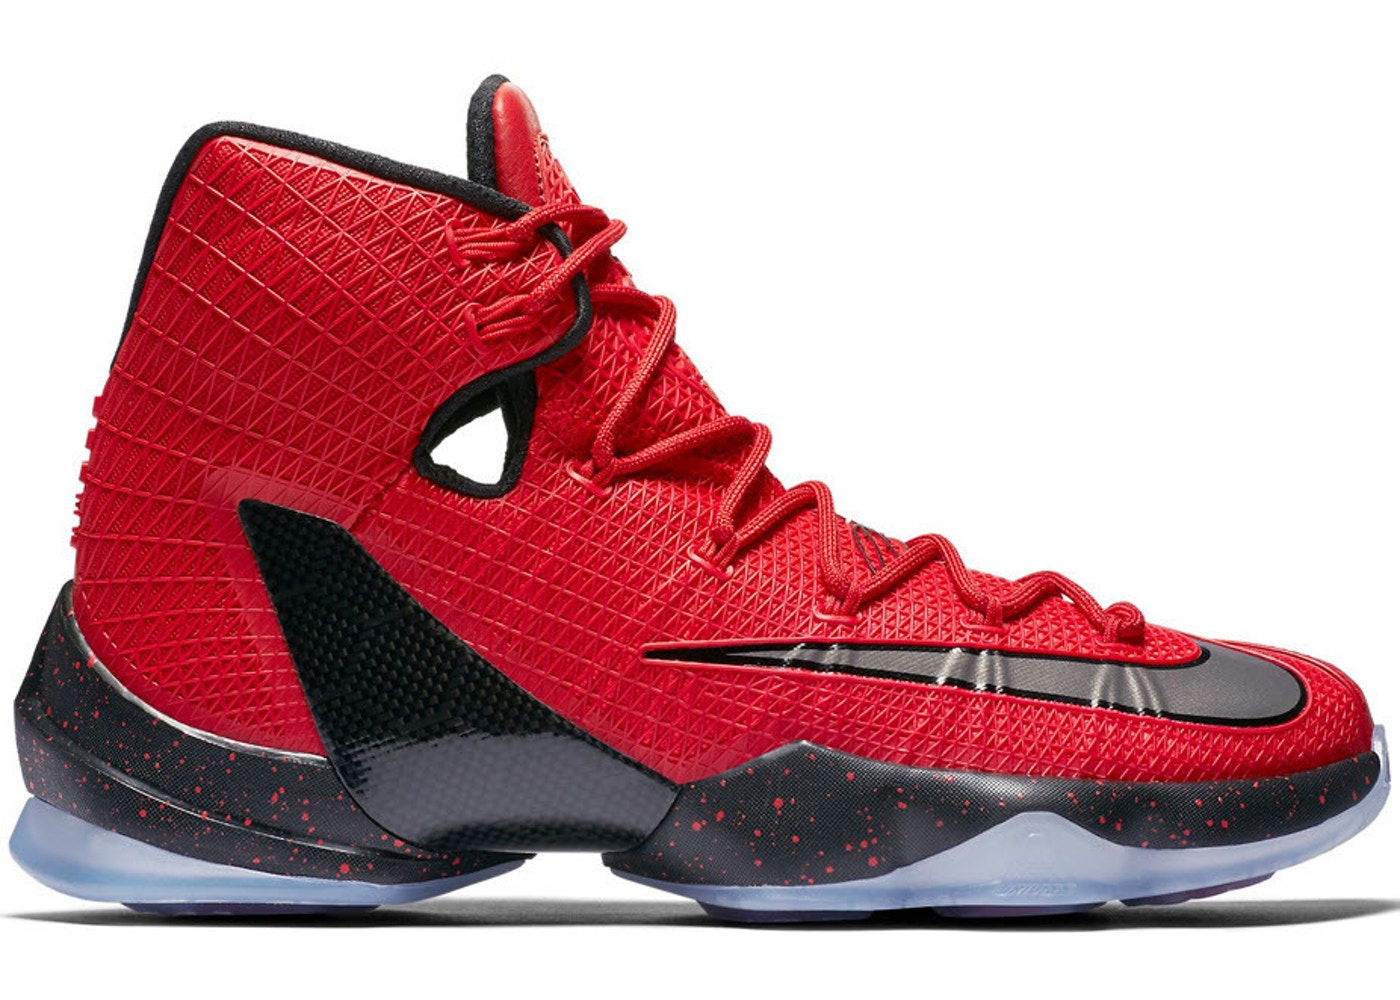 a425e3ba32cc LeBron 13 Elite University Red - 831923-606